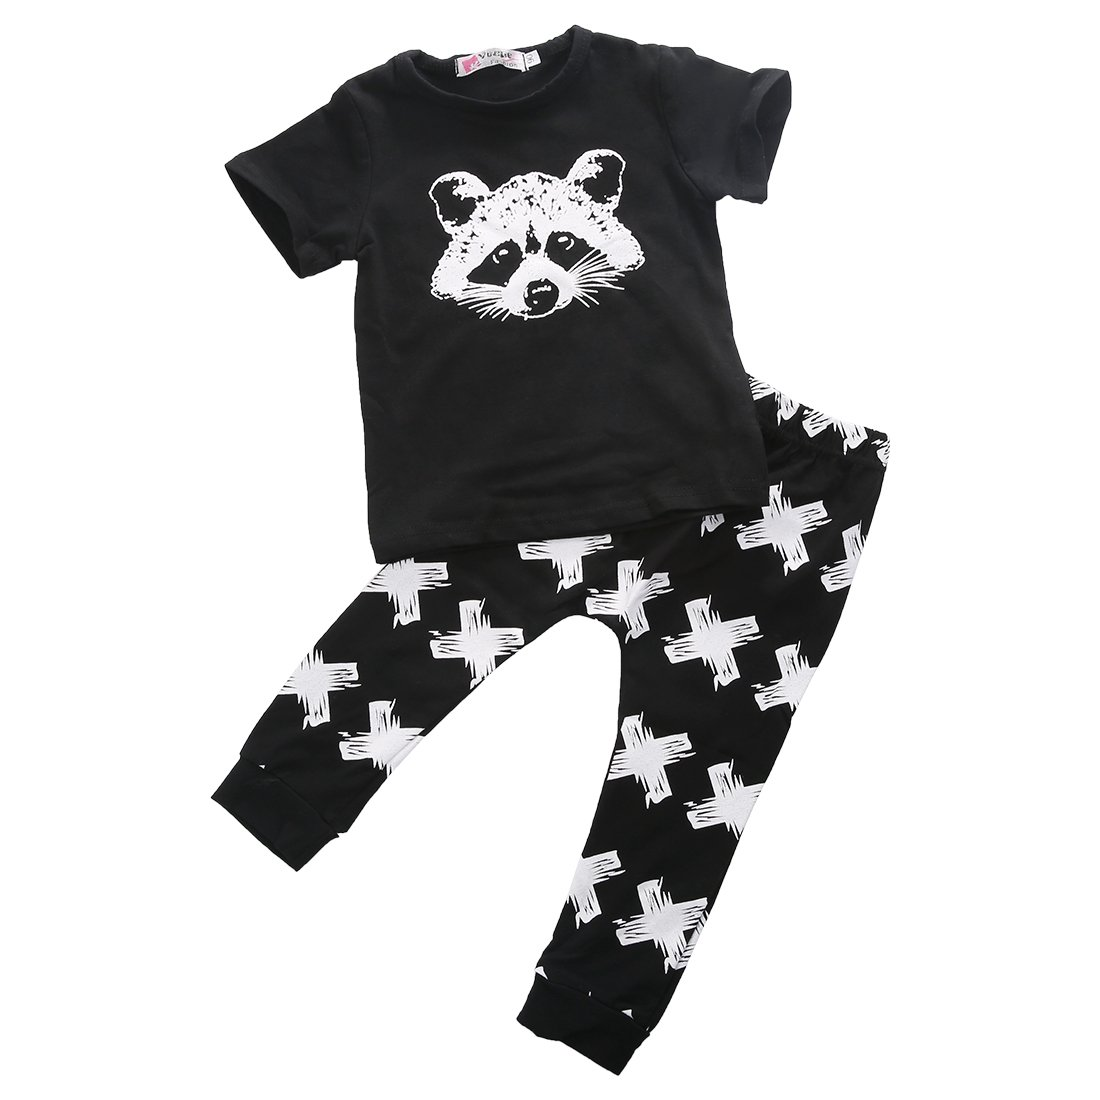 Newborn Outfit Clothes T shirt Outfits product image